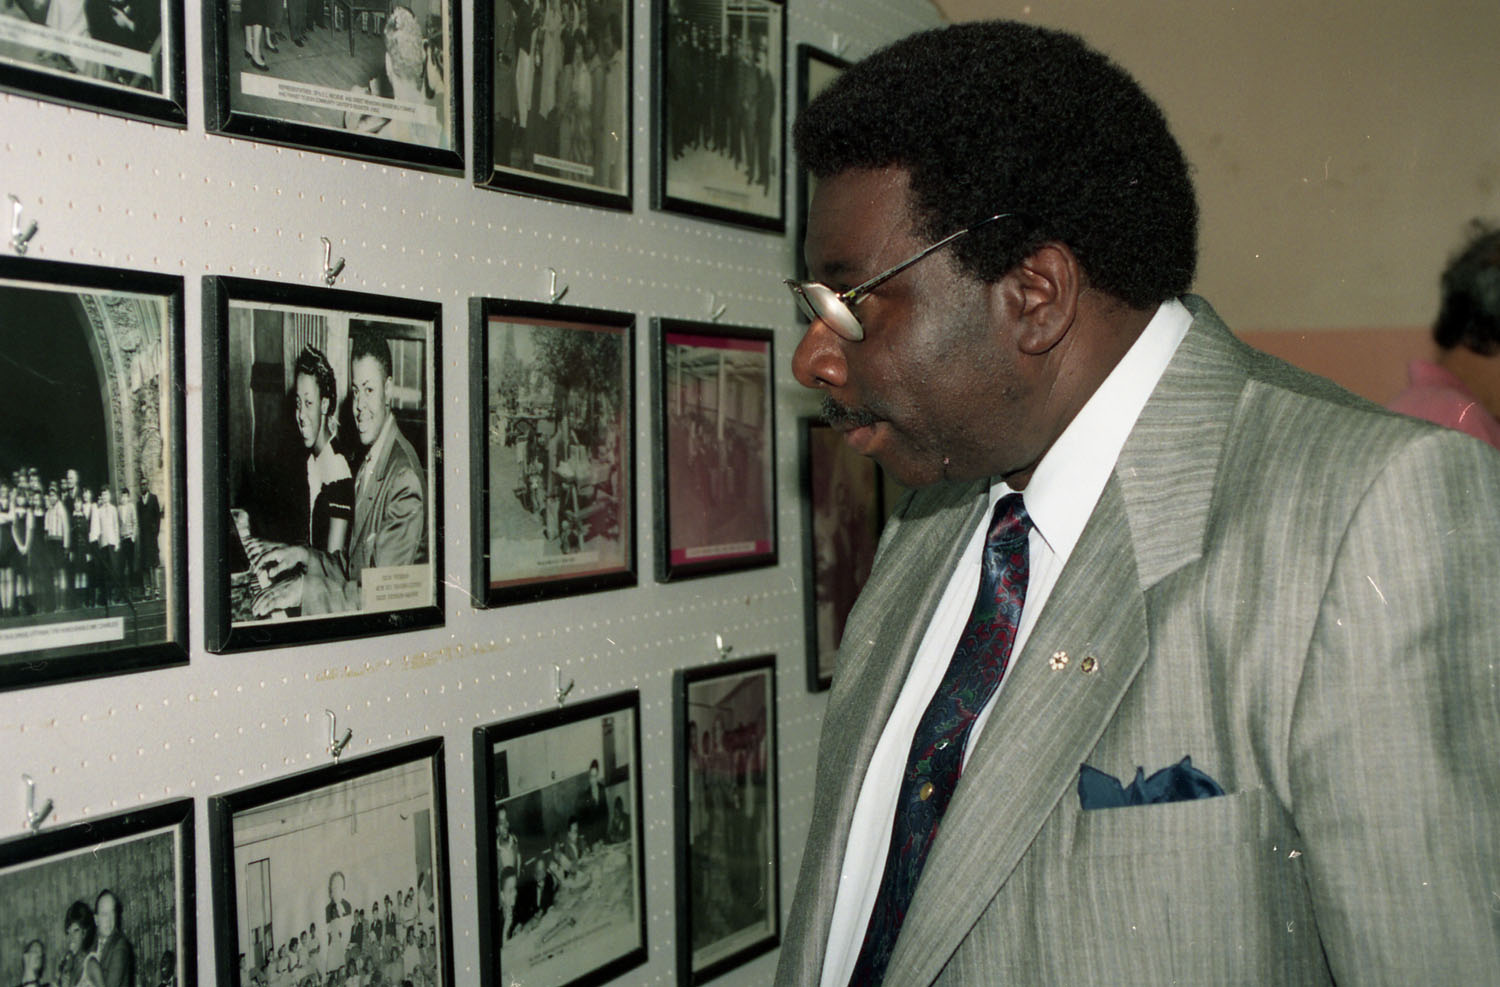 Le pianiste jazz Oliver Jones regardant un mur de photos encadrées au Negro Community Centre